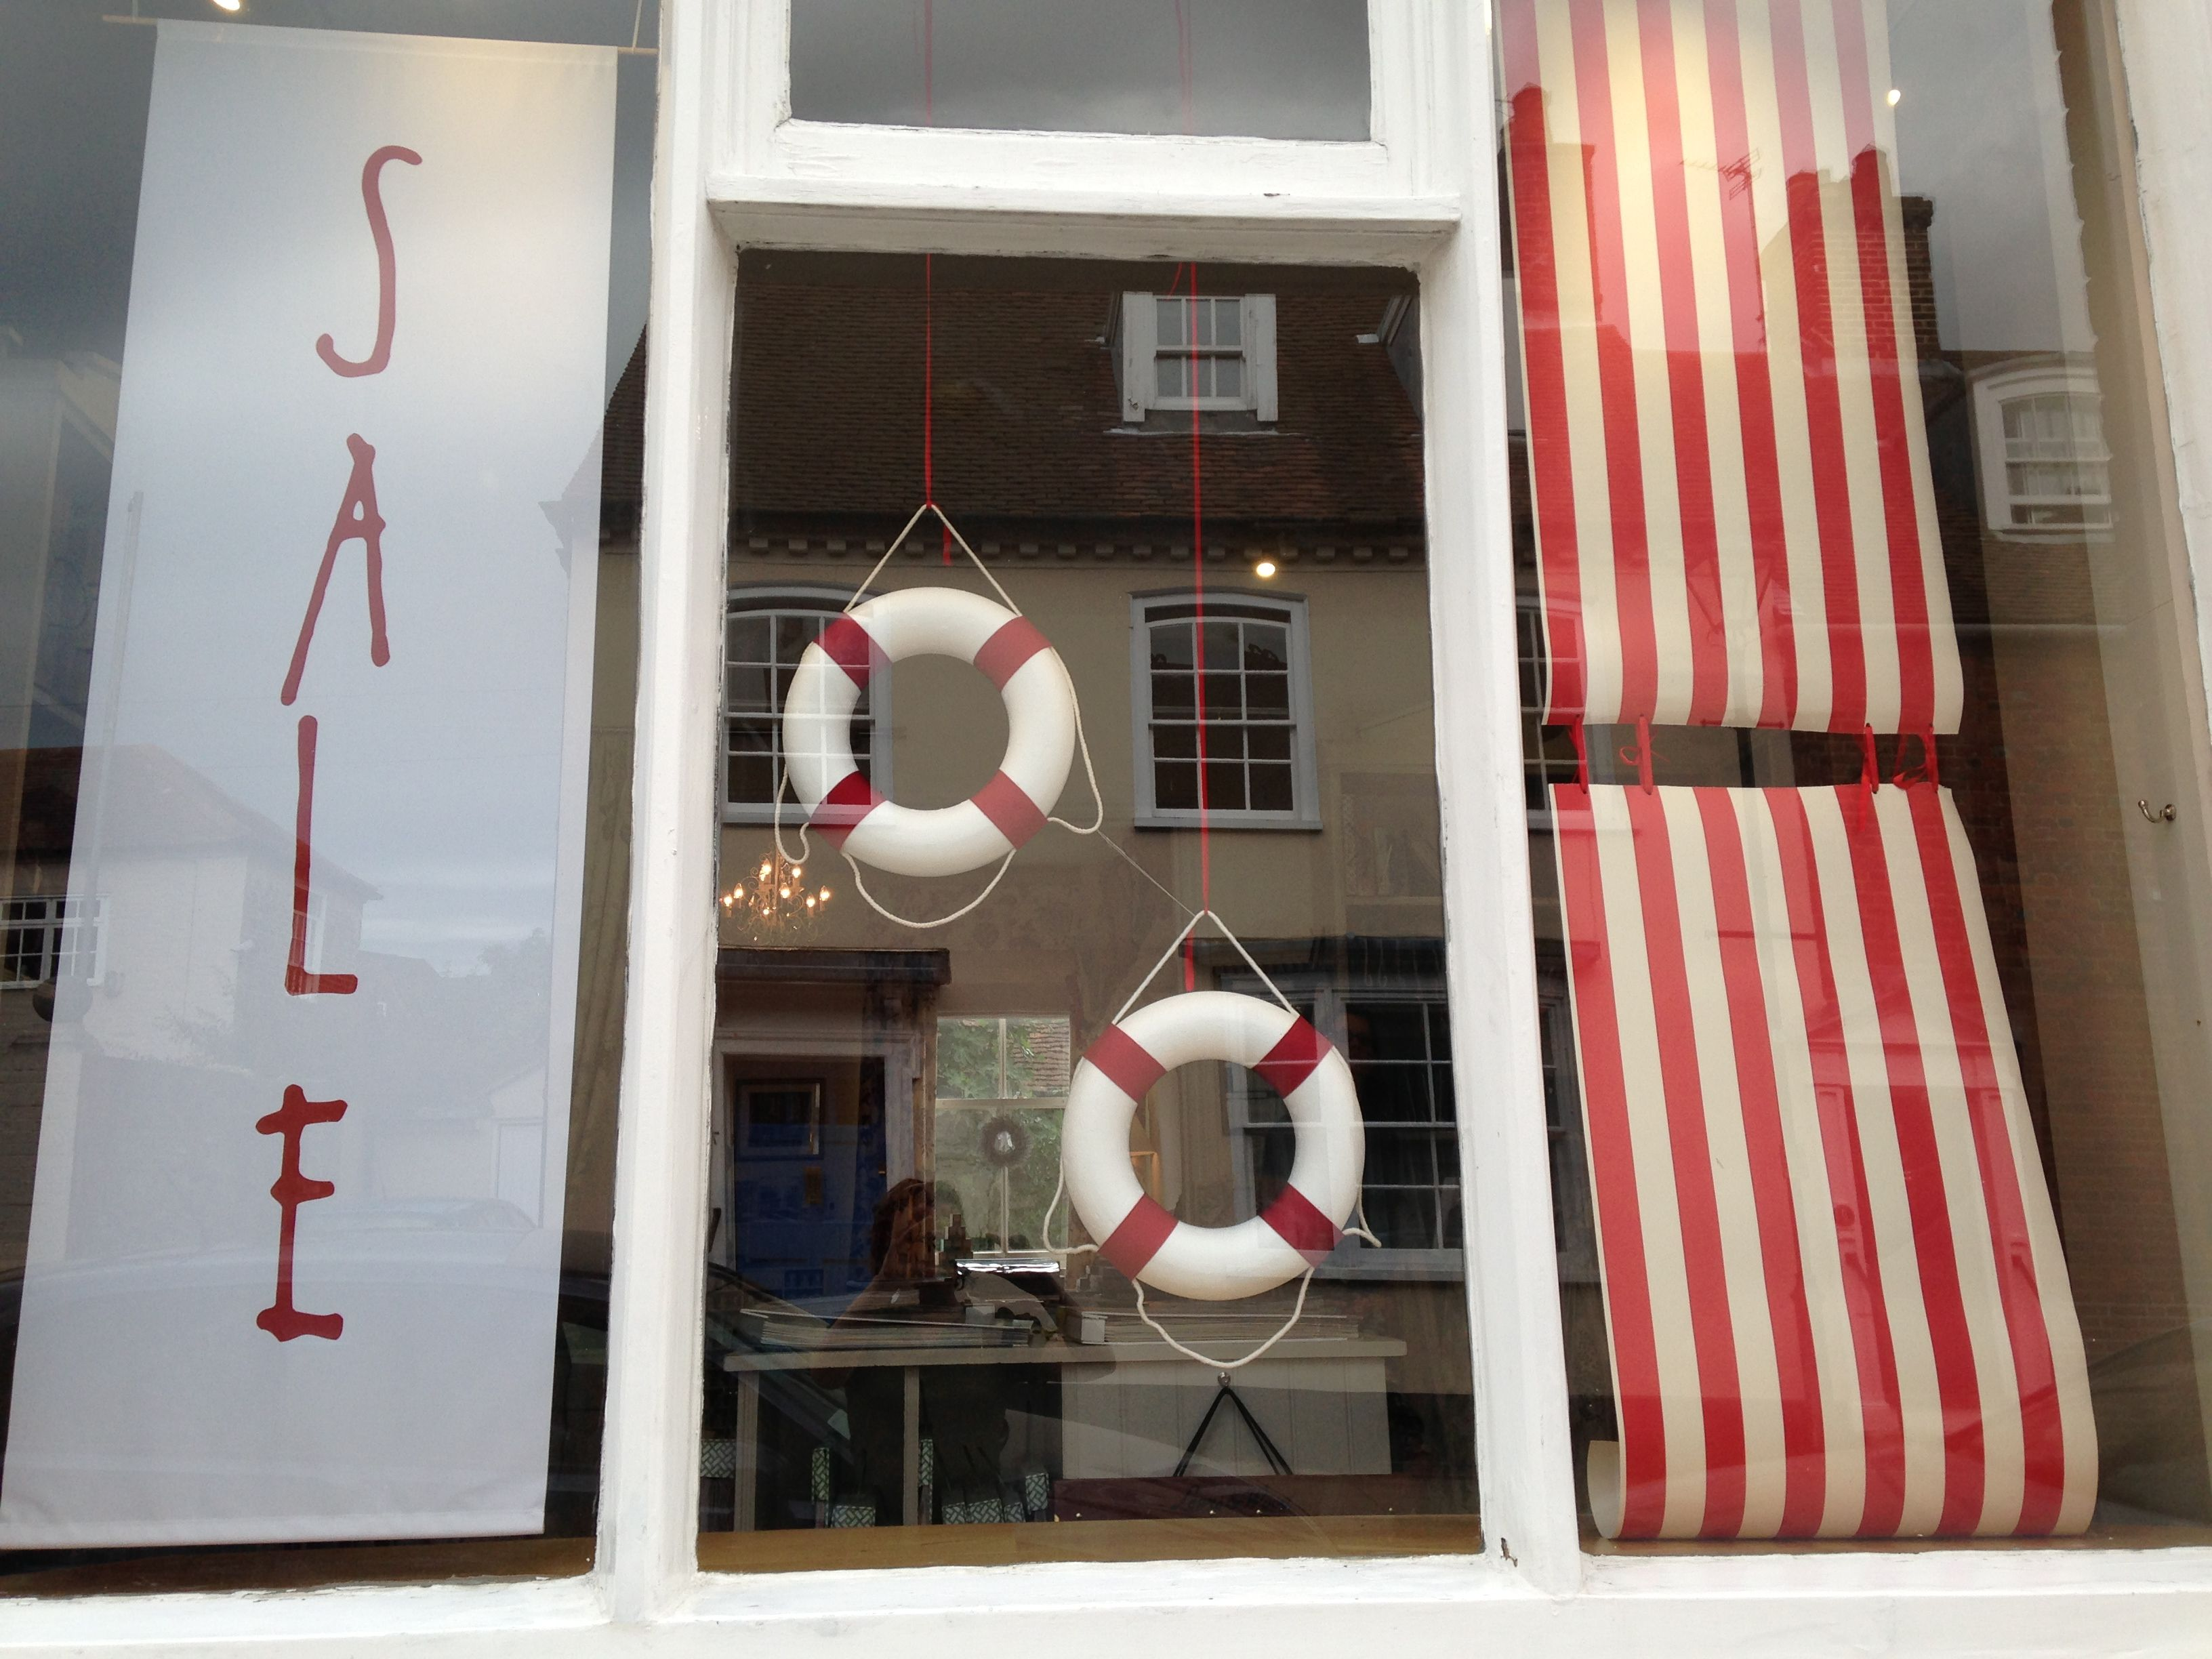 Window display ideas  sale window display with handmade life rings at sue foster interiors